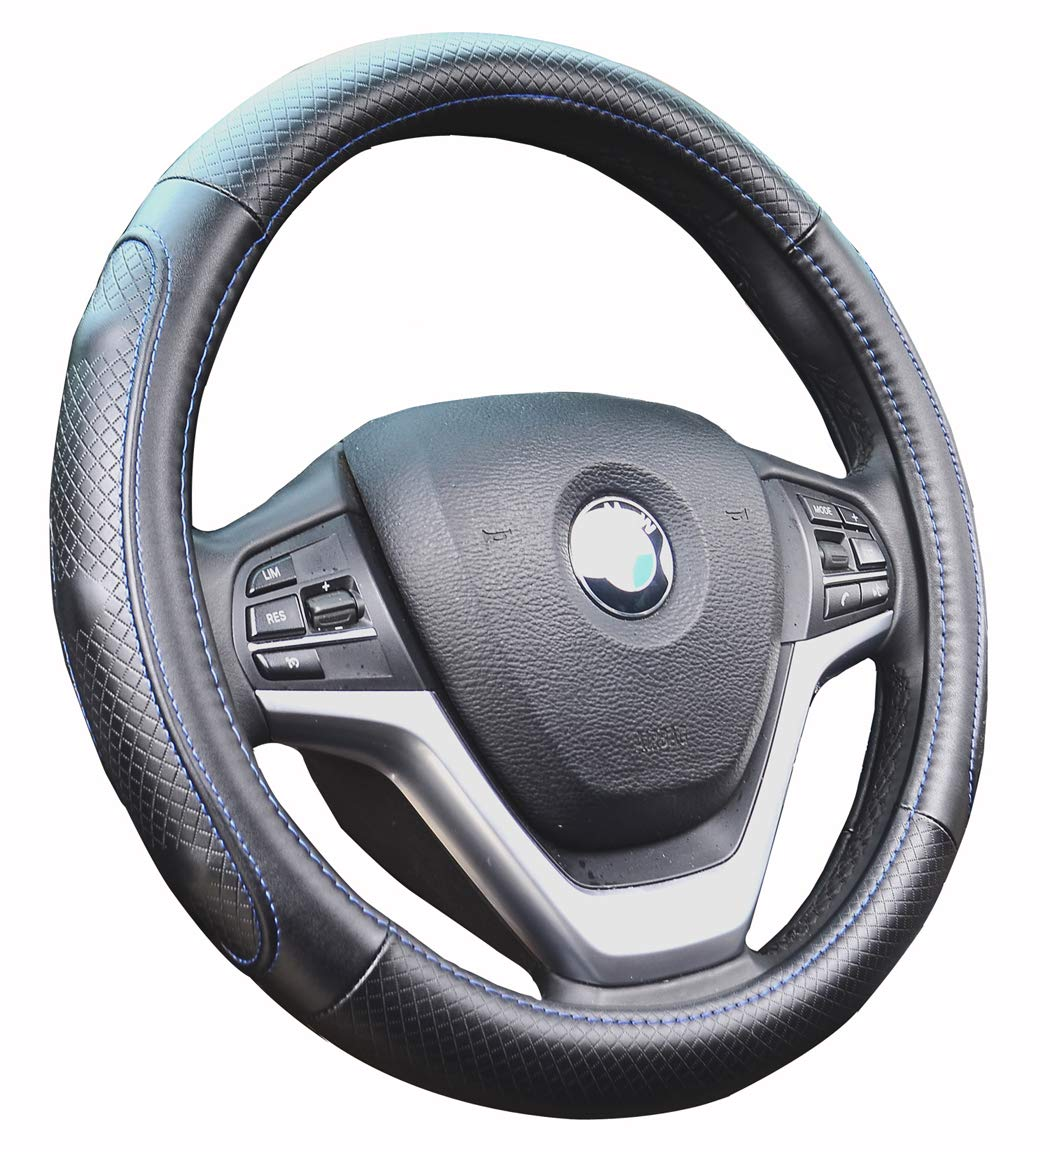 Super Accessories Auto Steering Wheel Cover Leather Universal 15 inch Fashion Feel Comfortable with Genuine Leather Steering Wheel Cover for Car Truck SUV (Blue)